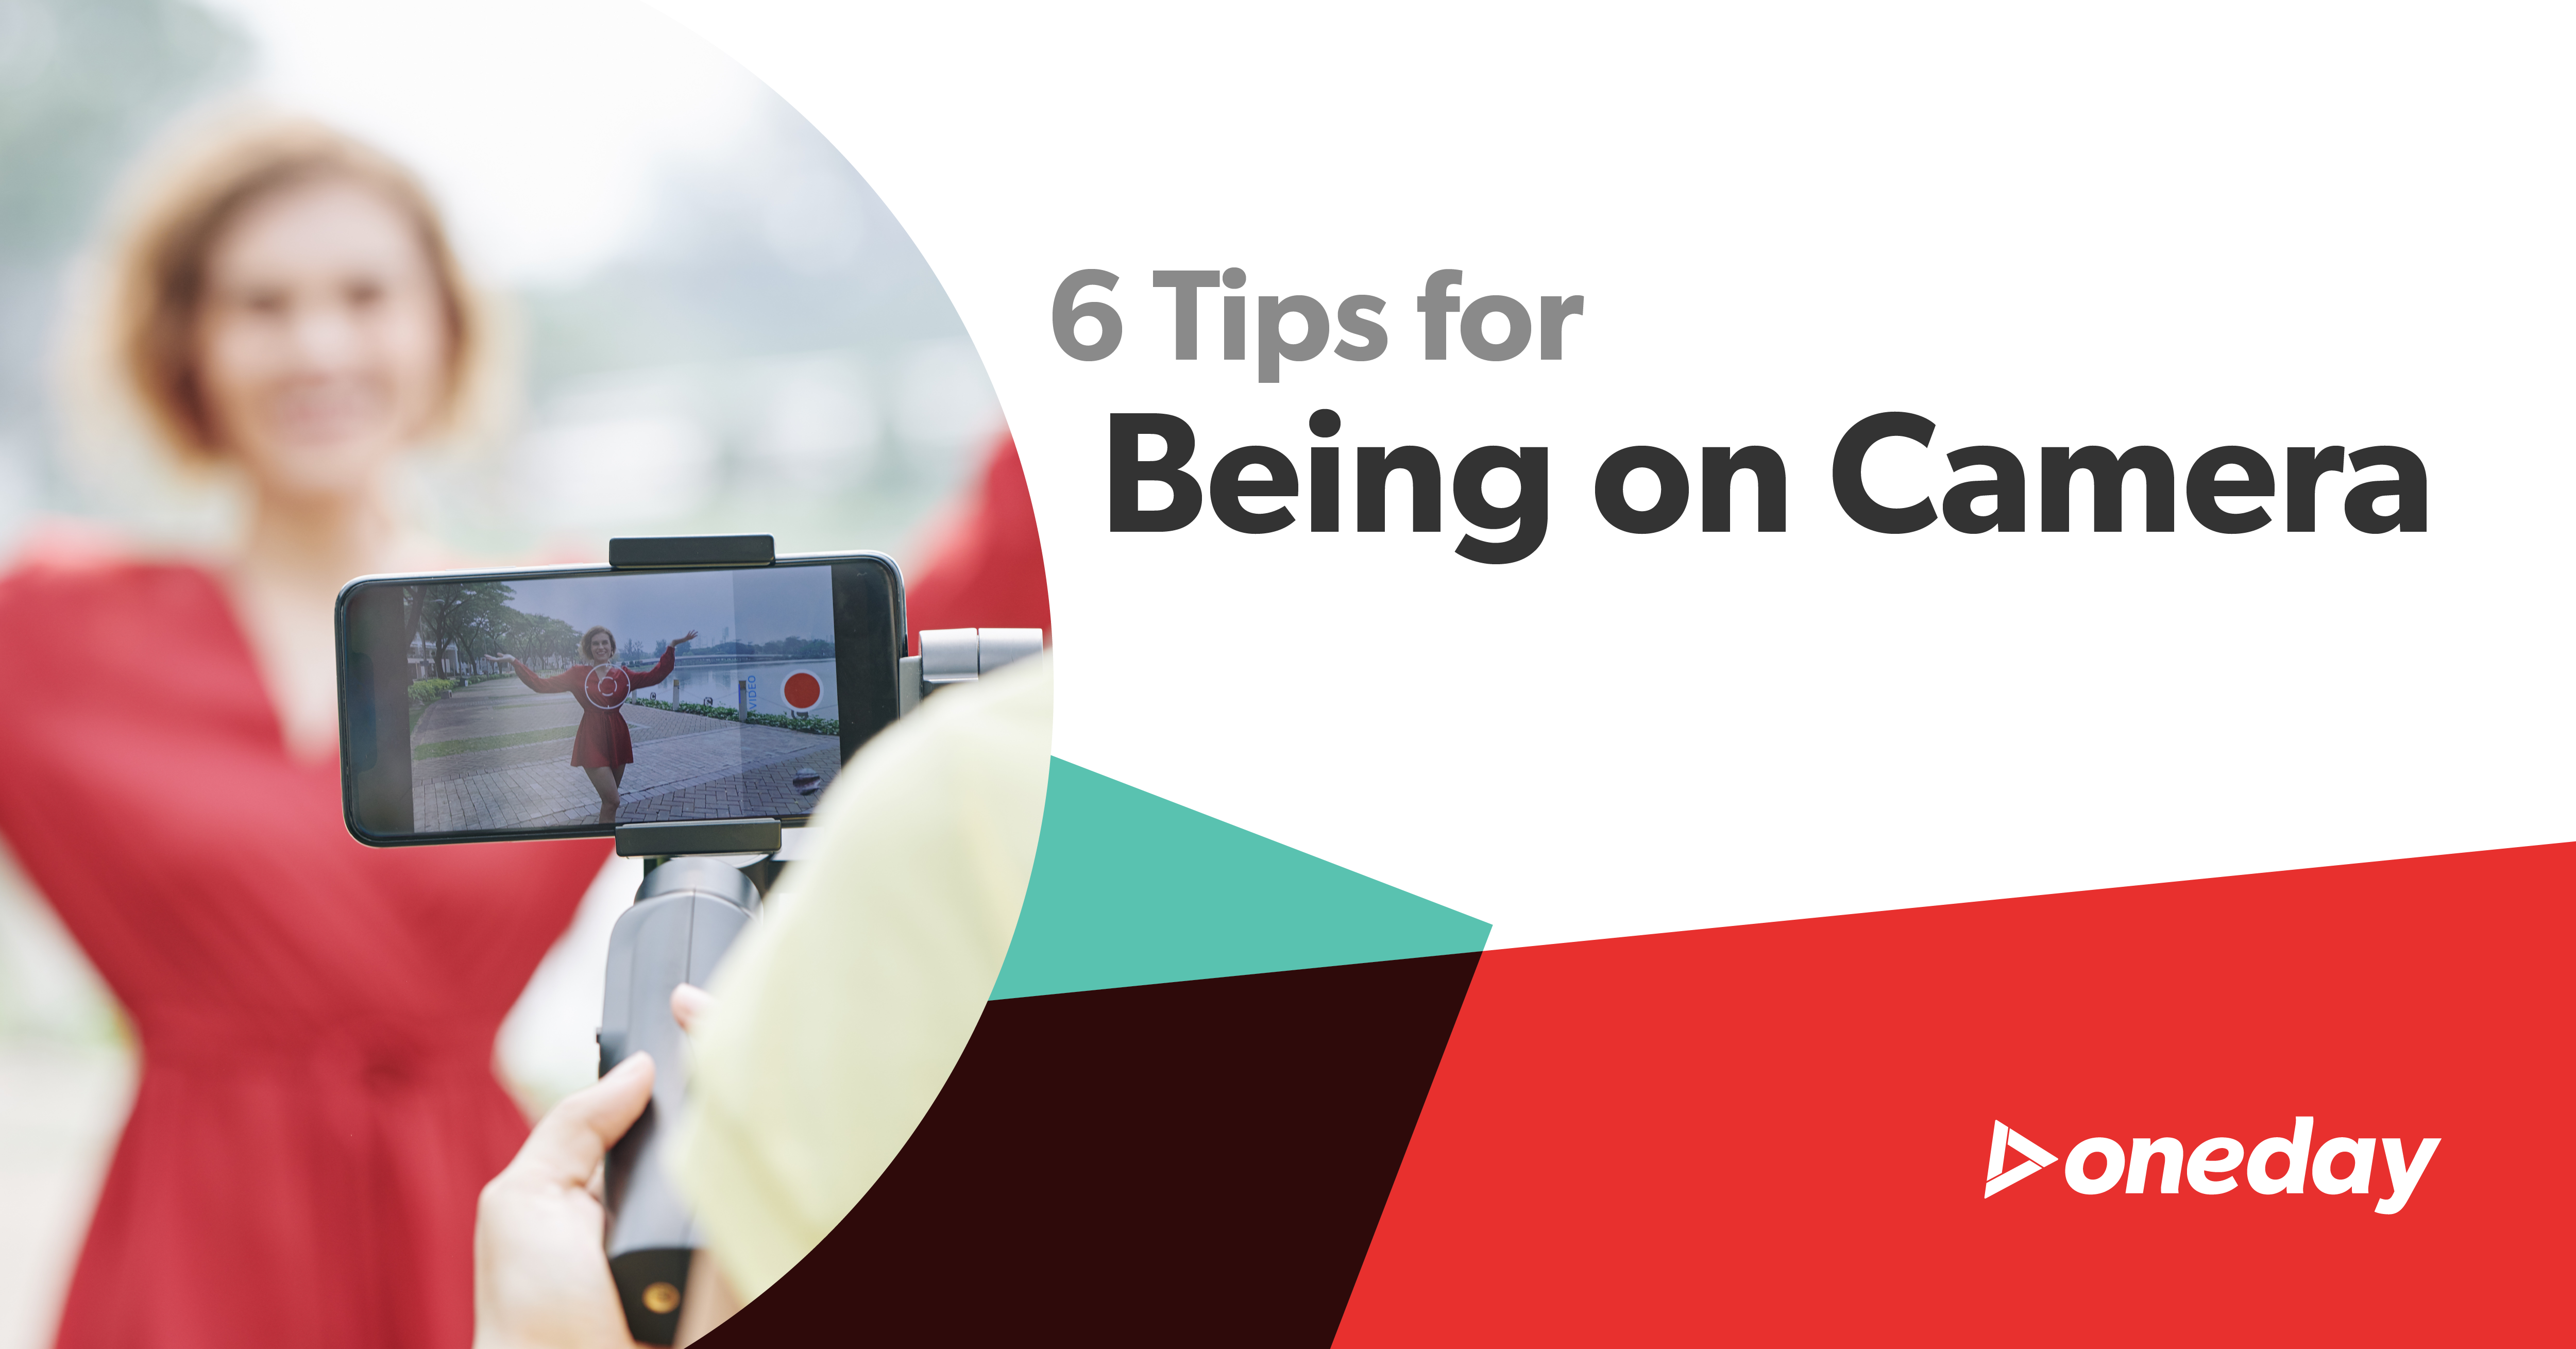 A look at six simple tips you can start using today to feel more comfortable on camera and improve engagement with your senior living video content.